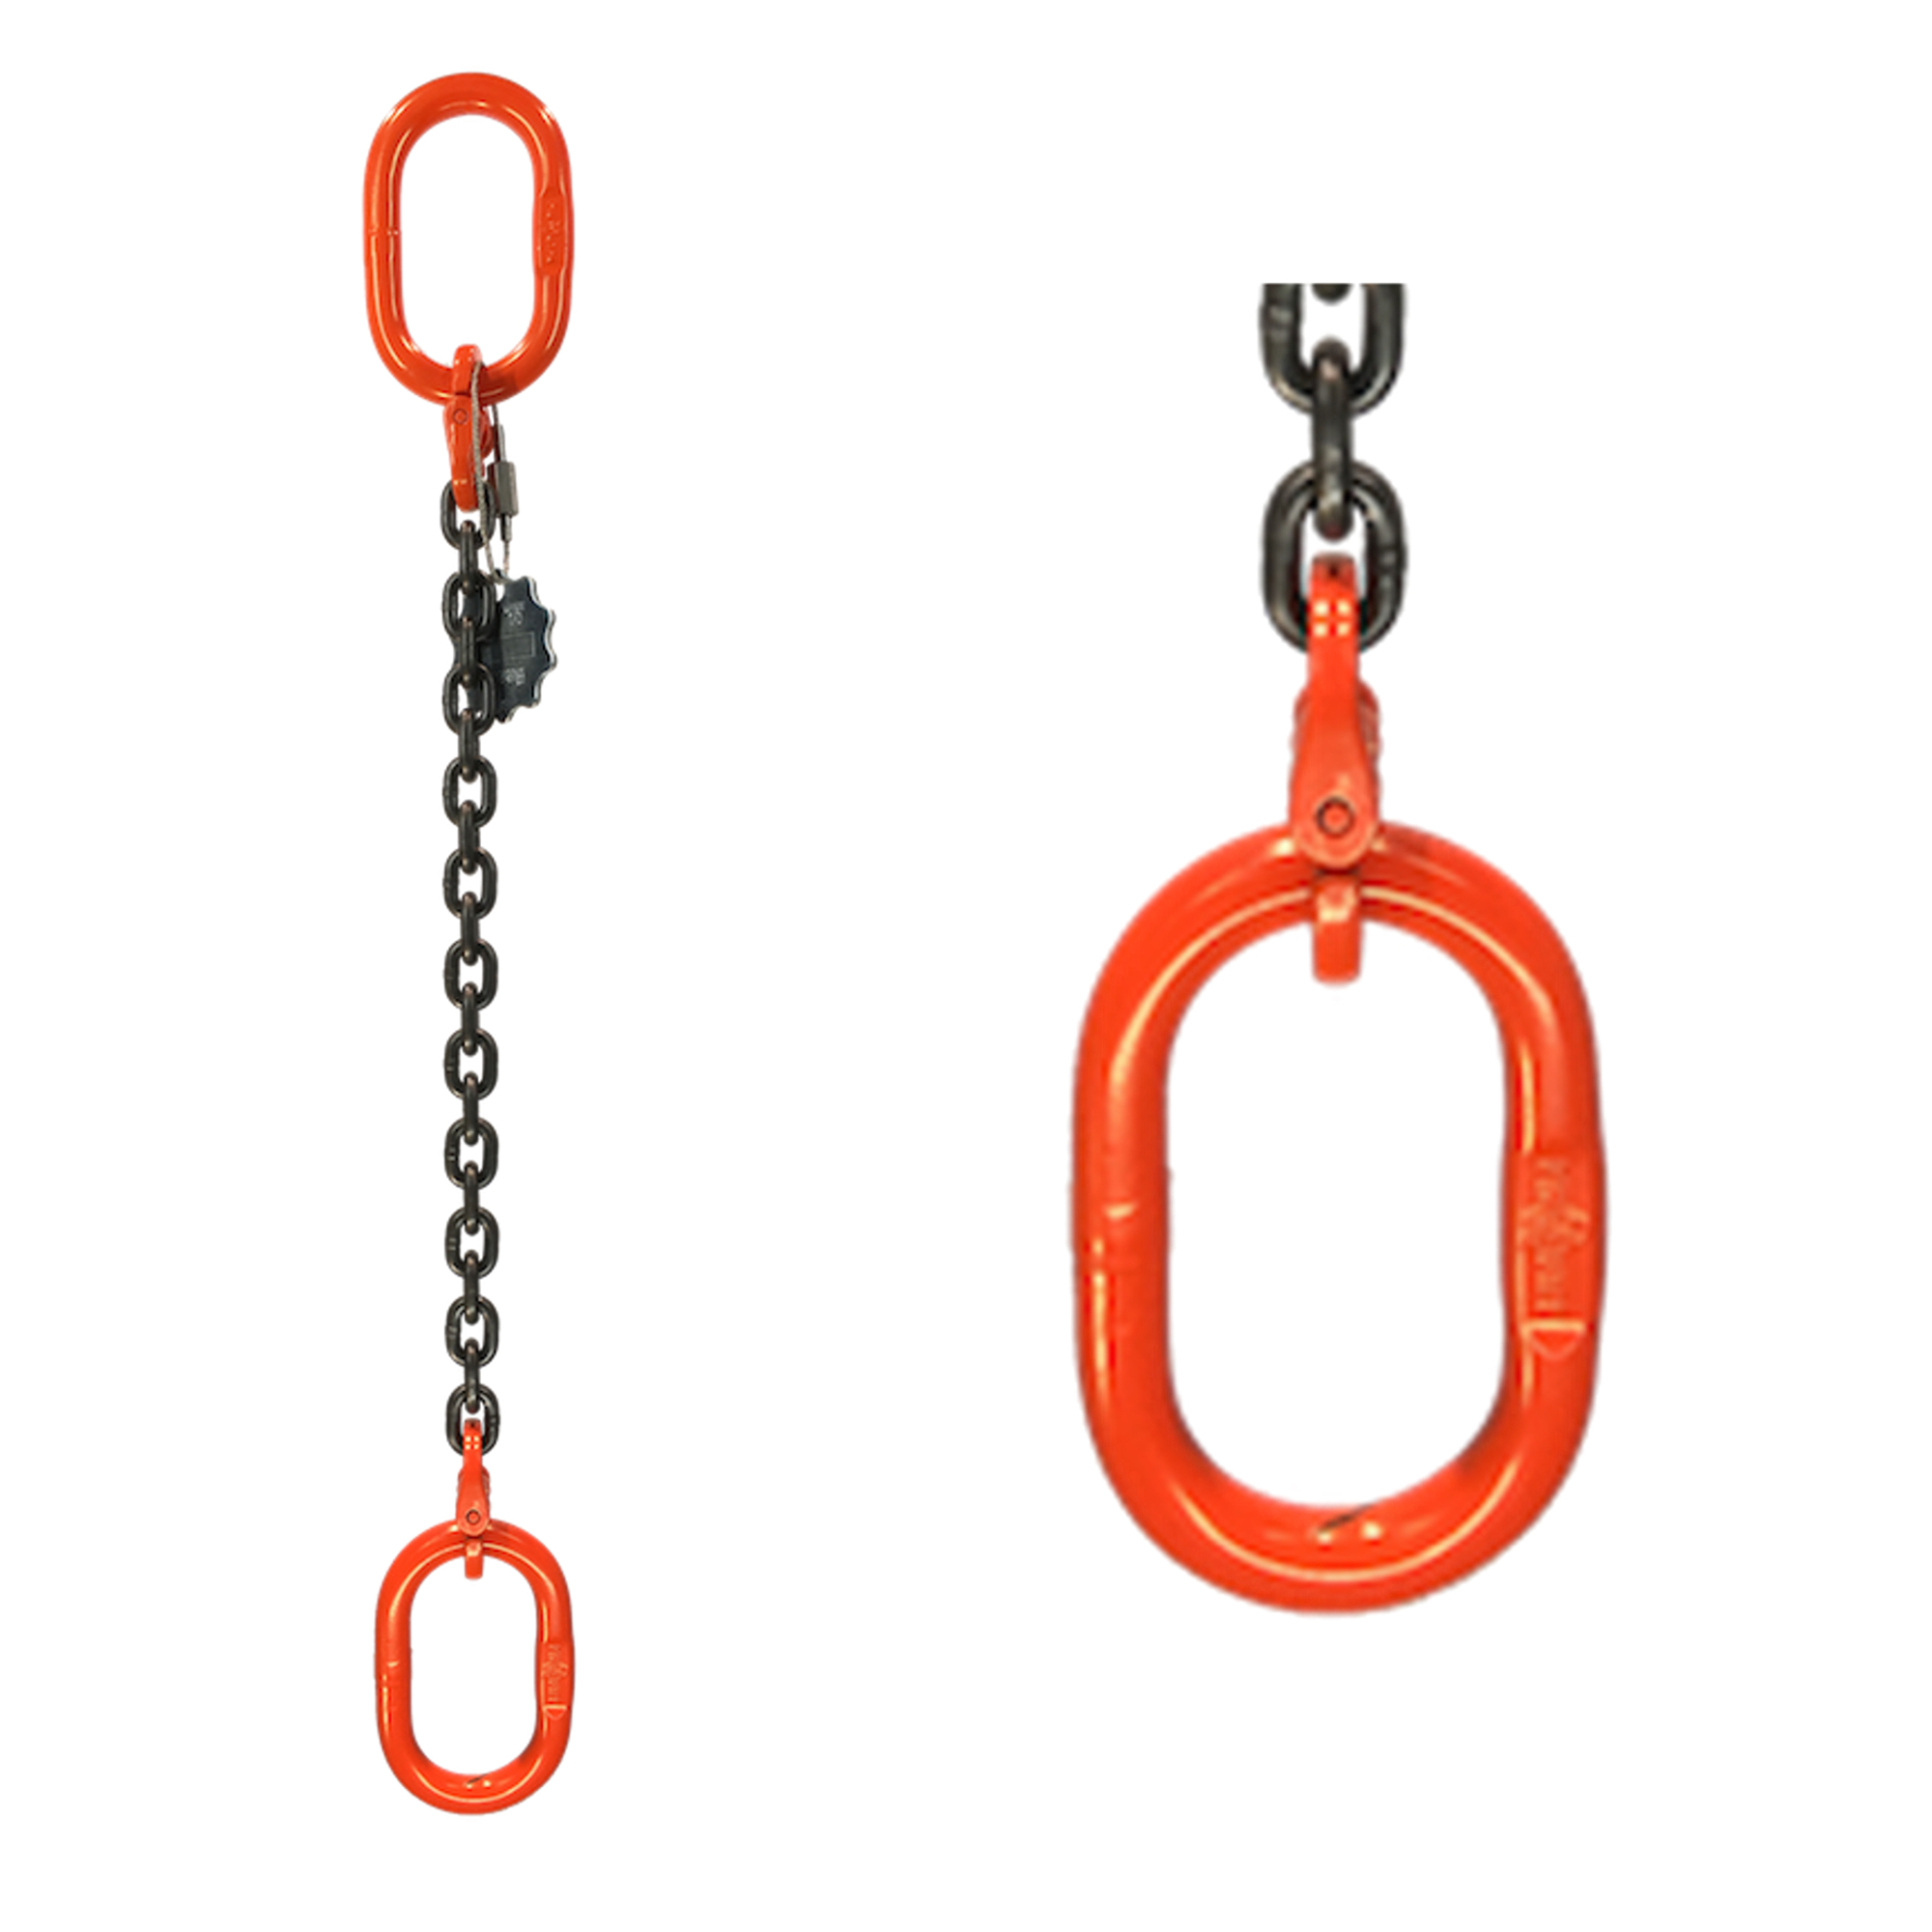 AW-72 Chain Sling Attachment